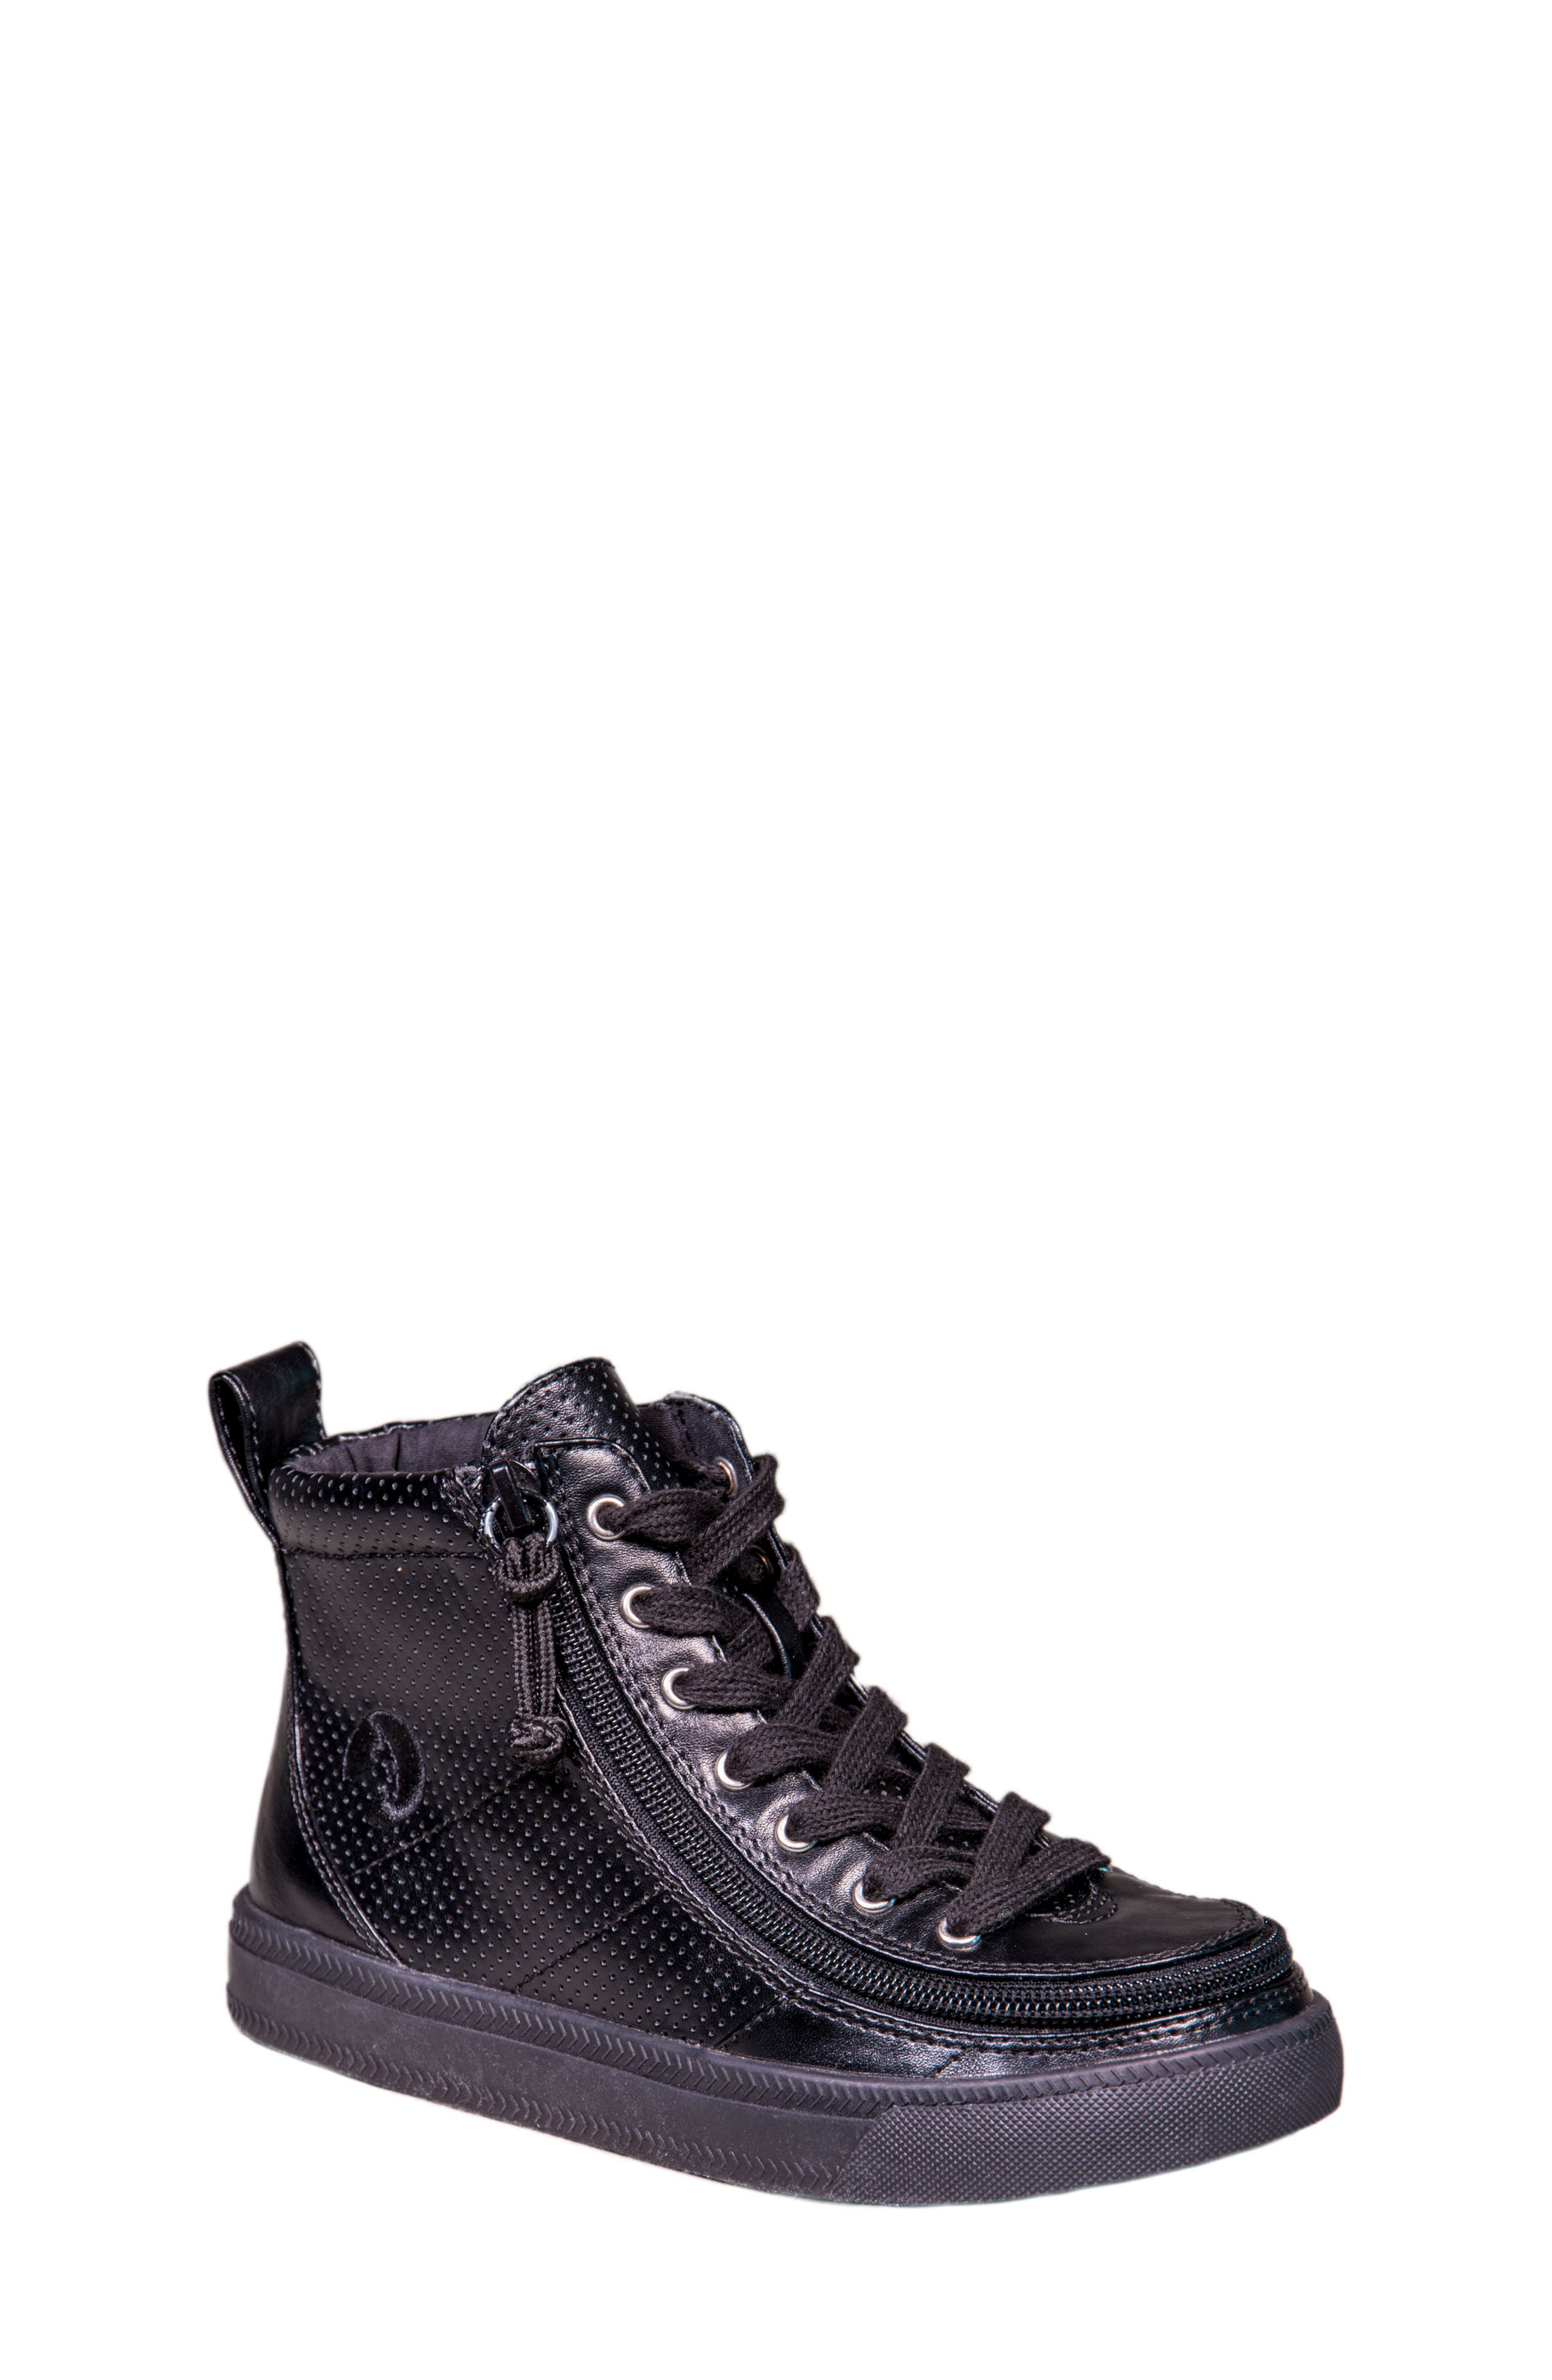 Zip Around Perforated High Top Sneaker,                             Main thumbnail 1, color,                             001